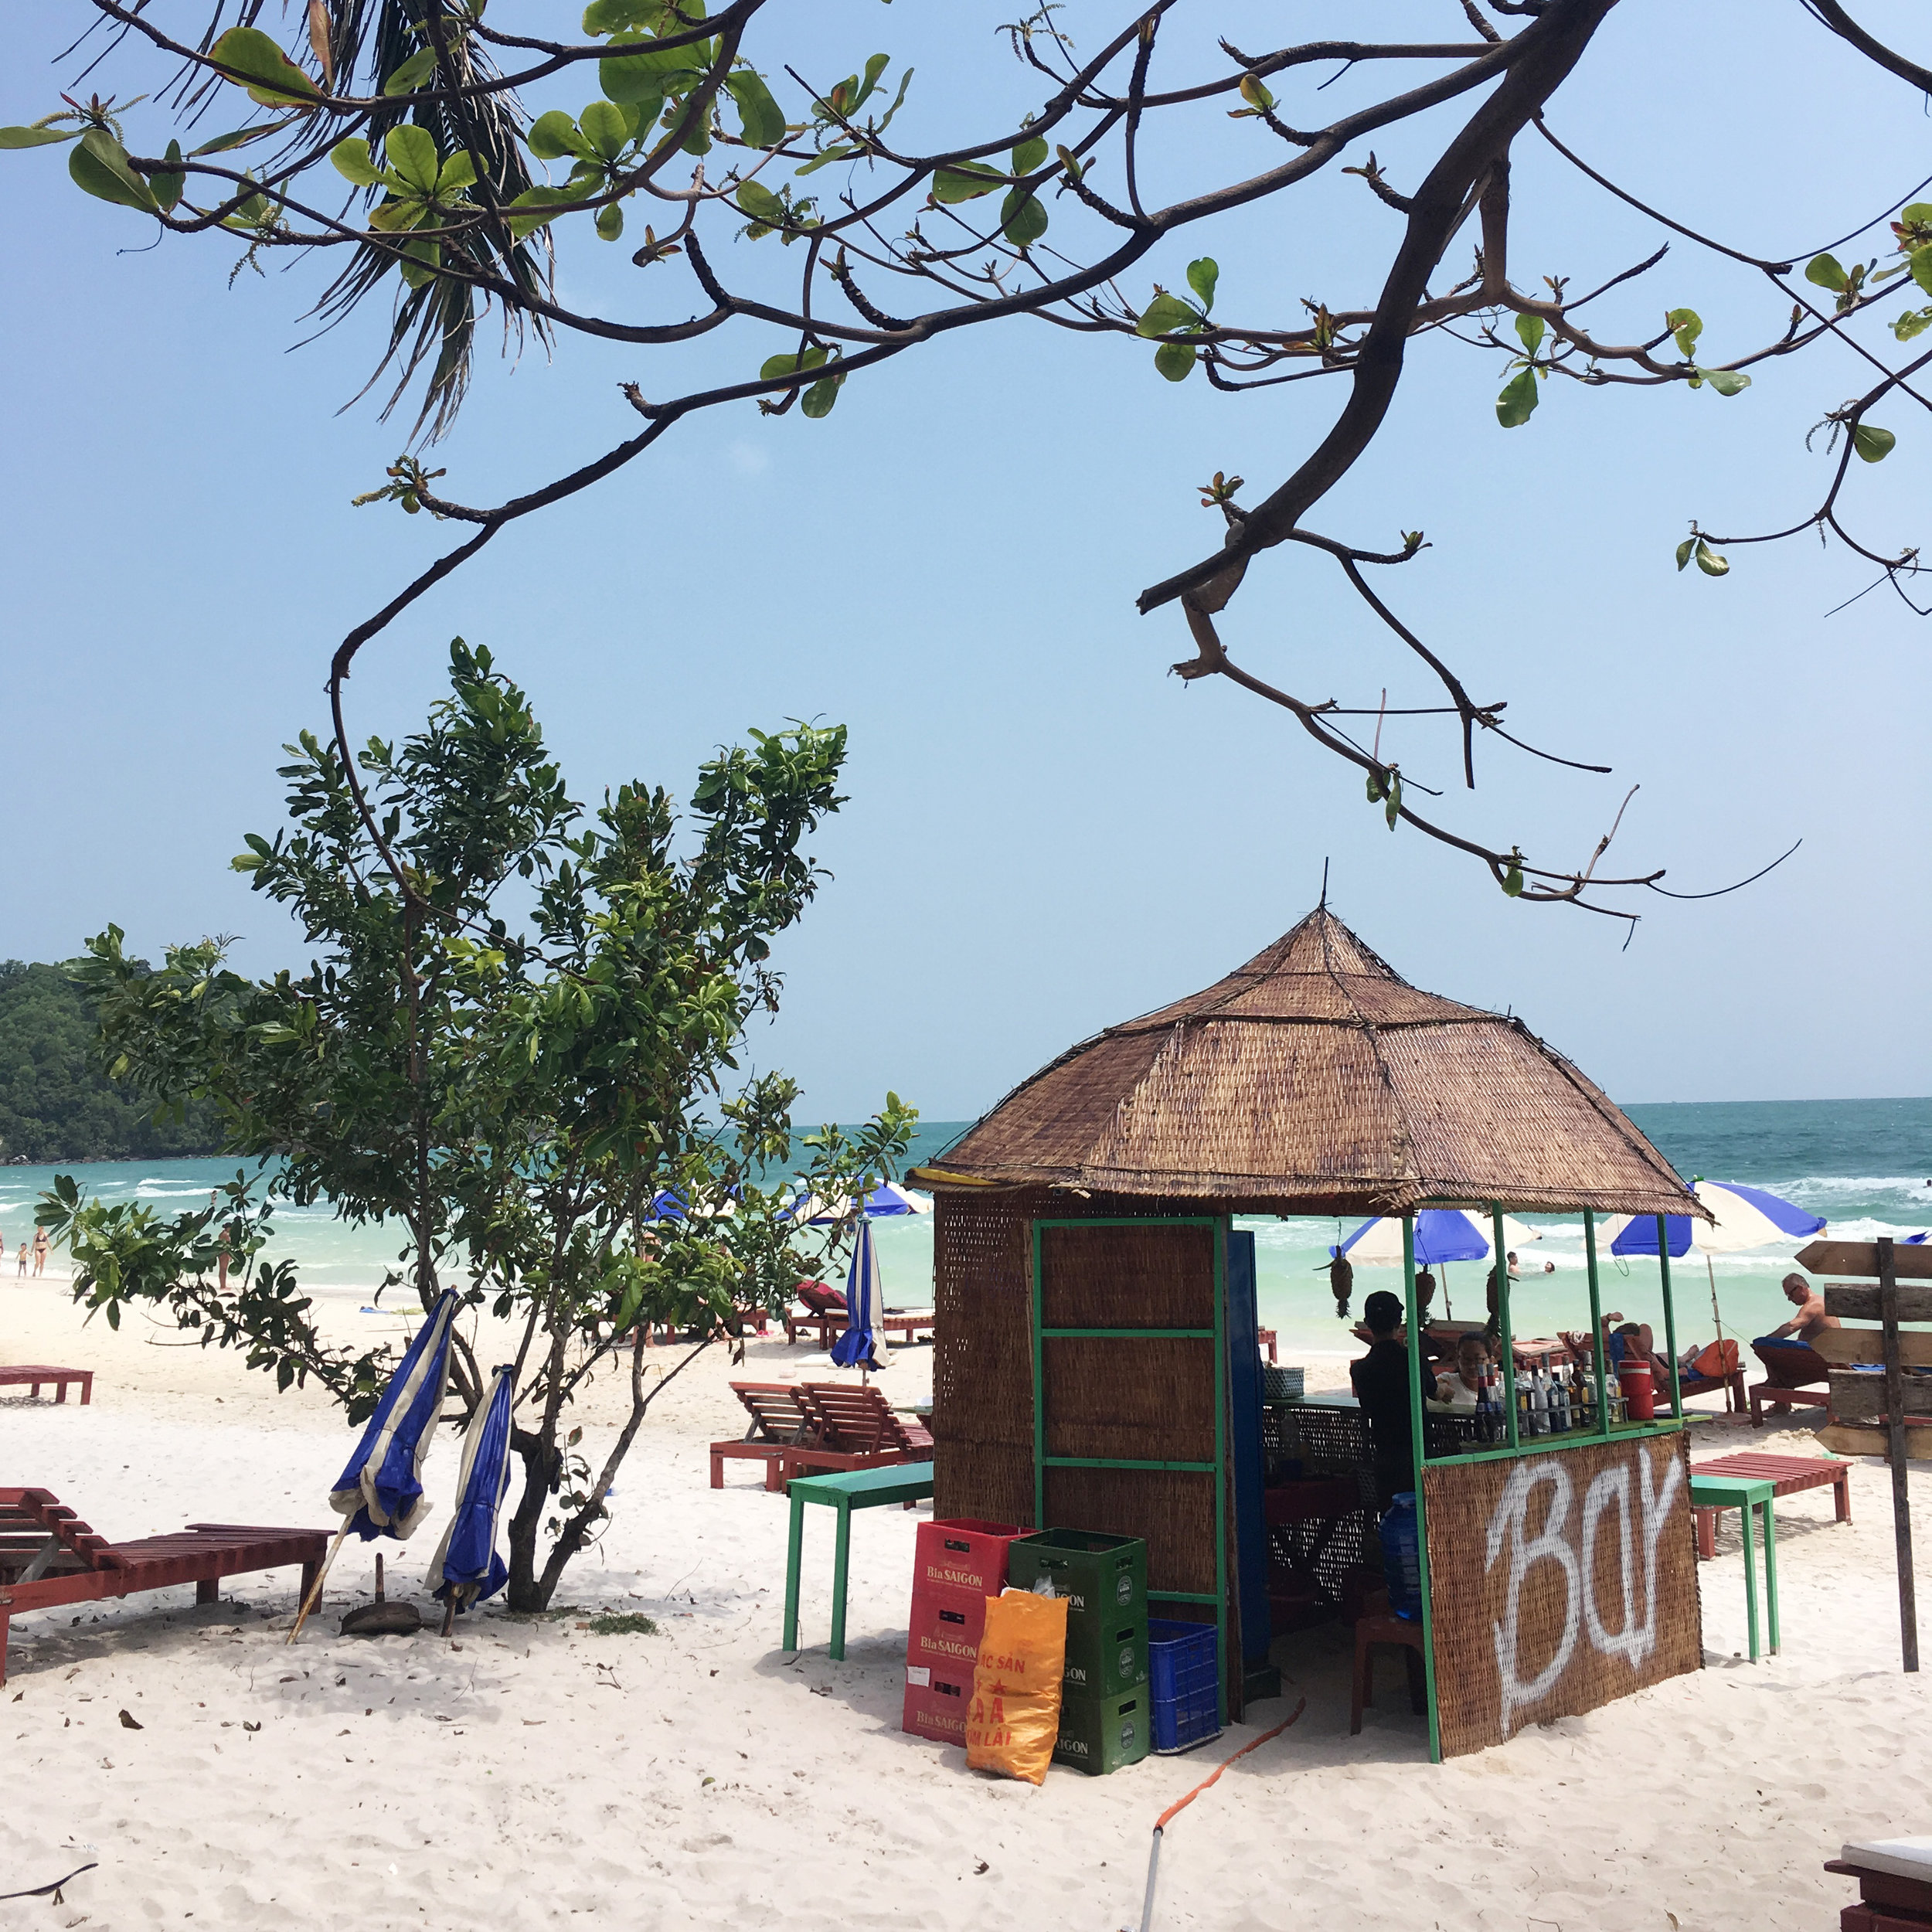 Paradise found : discovering Phu Quoc